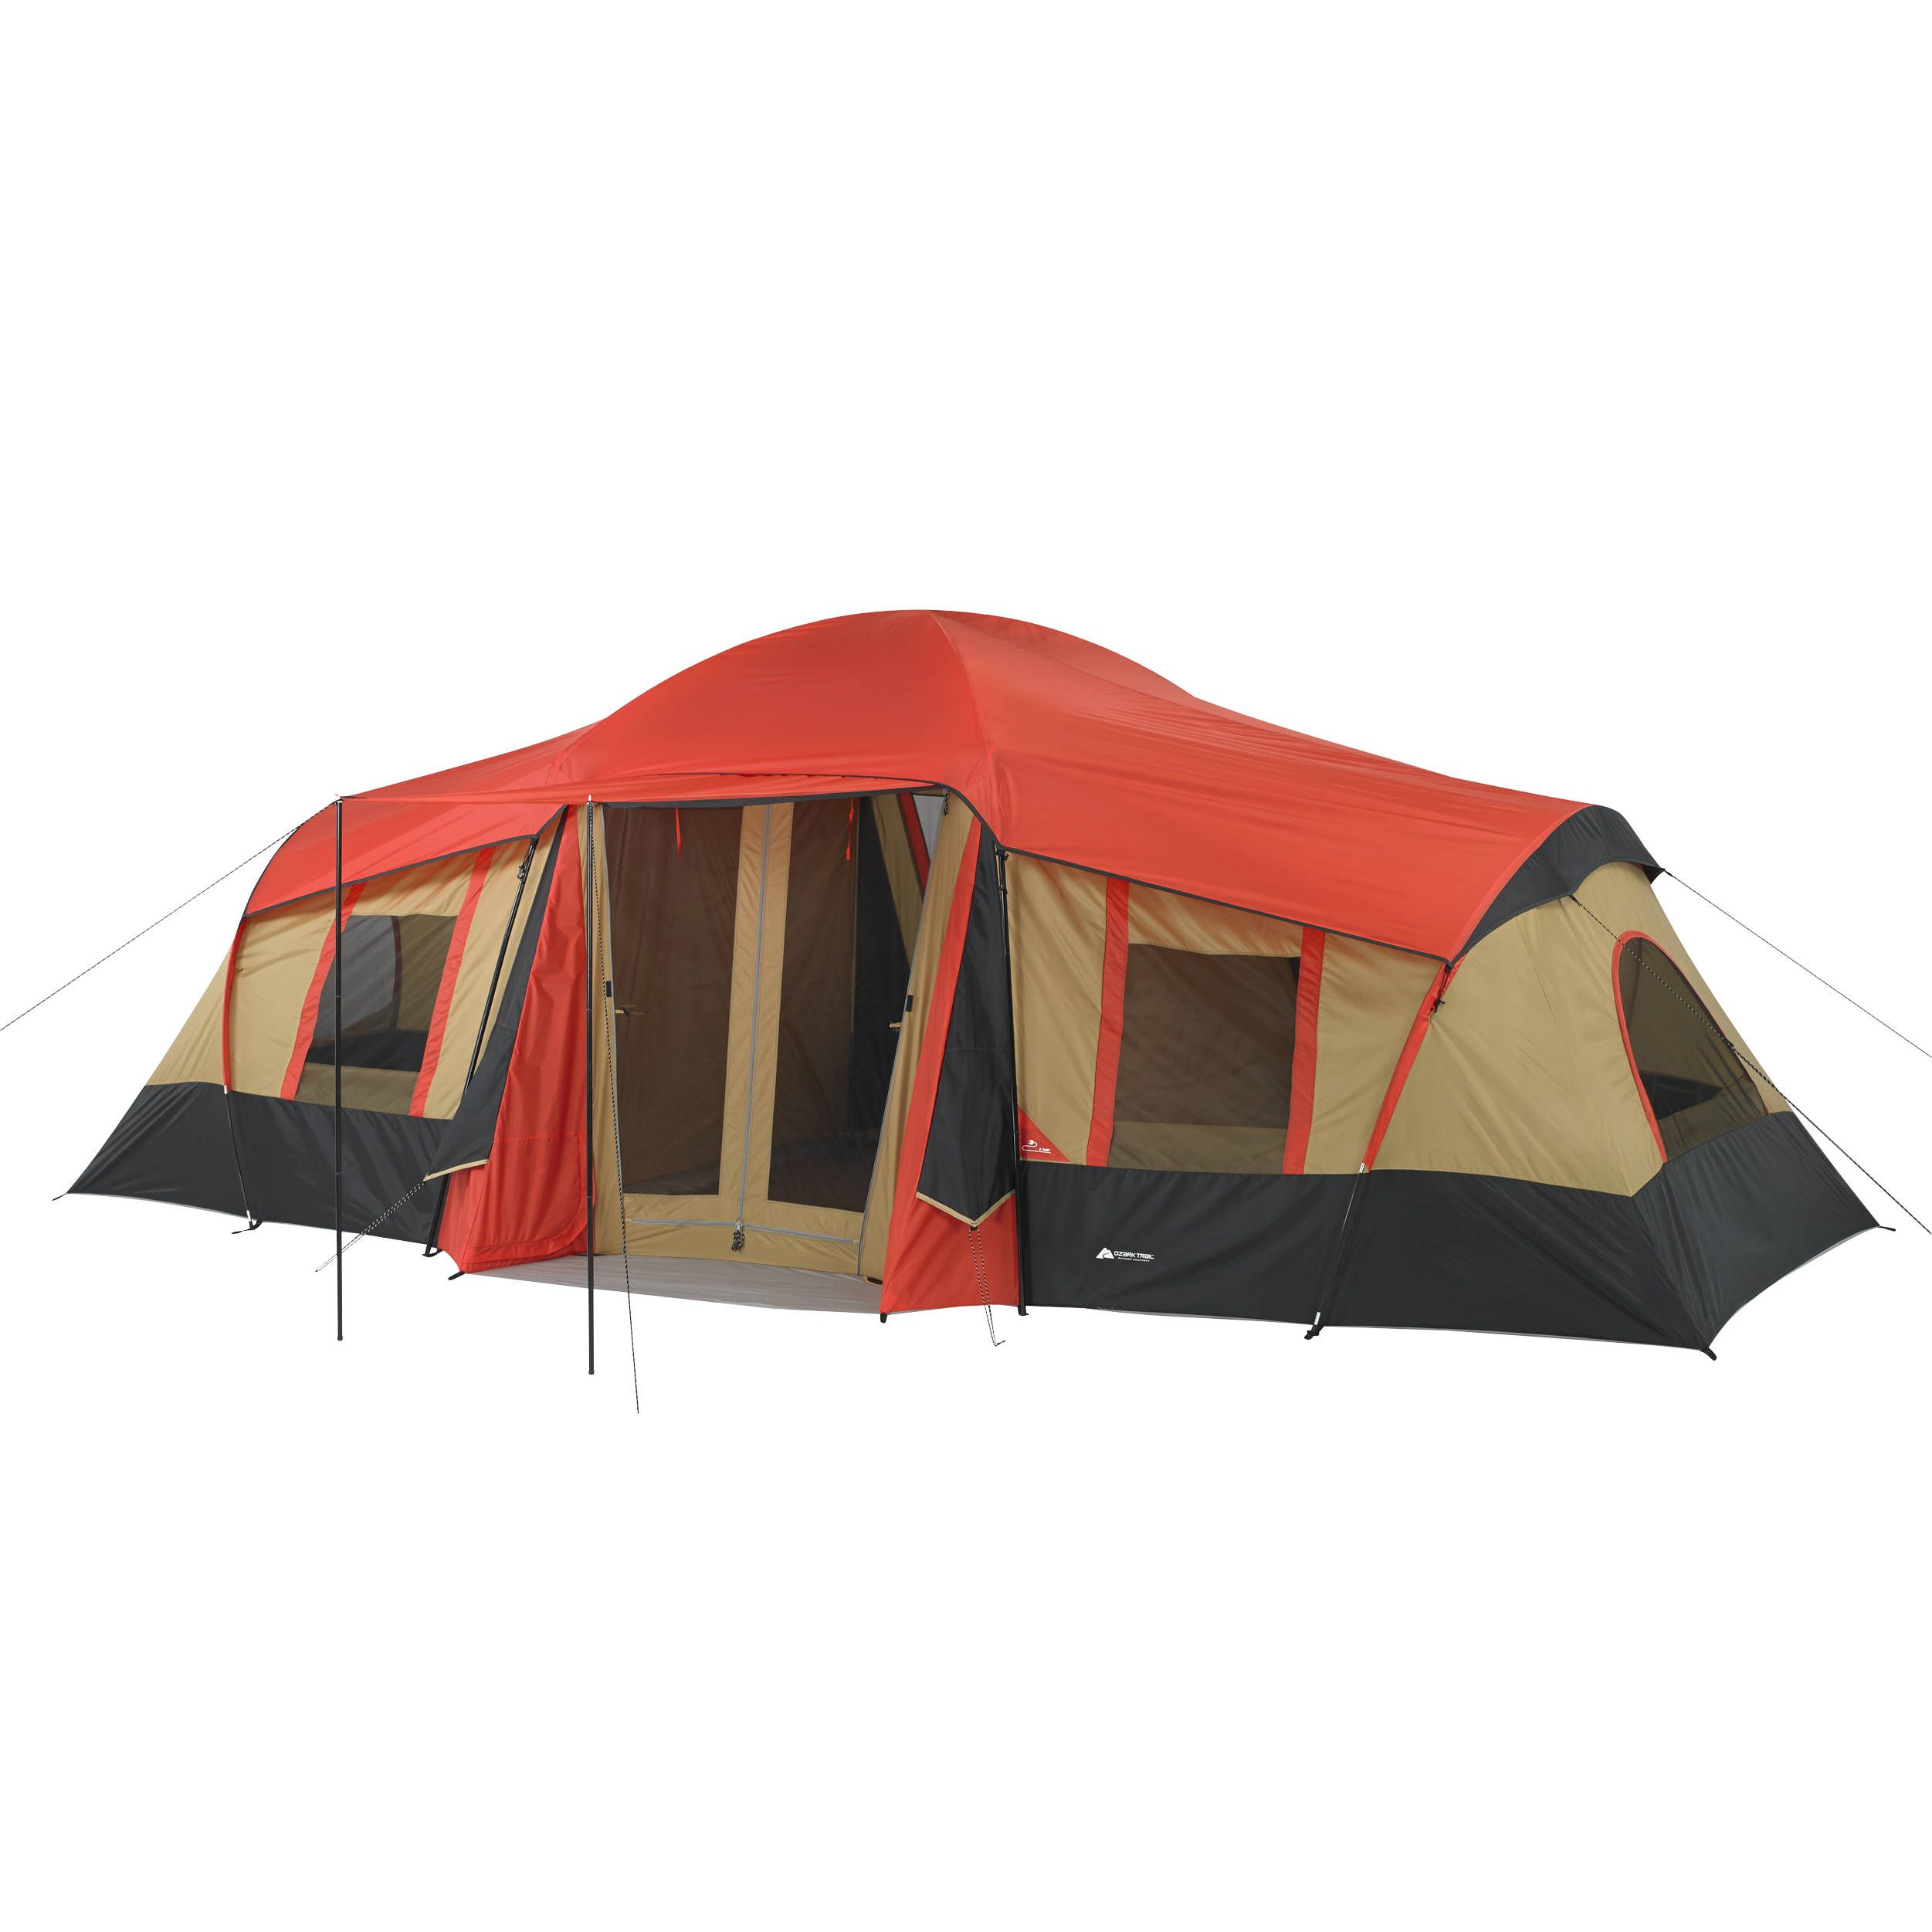 Ozark Trail 10 Person 3 Room Vacation Tent Built In Mud Mat Outdoor C&ing Dome  sc 1 st  Pinterest & Free 2-day shipping. Buy Ozark Trail 10-Person 3-Room Vacation ...